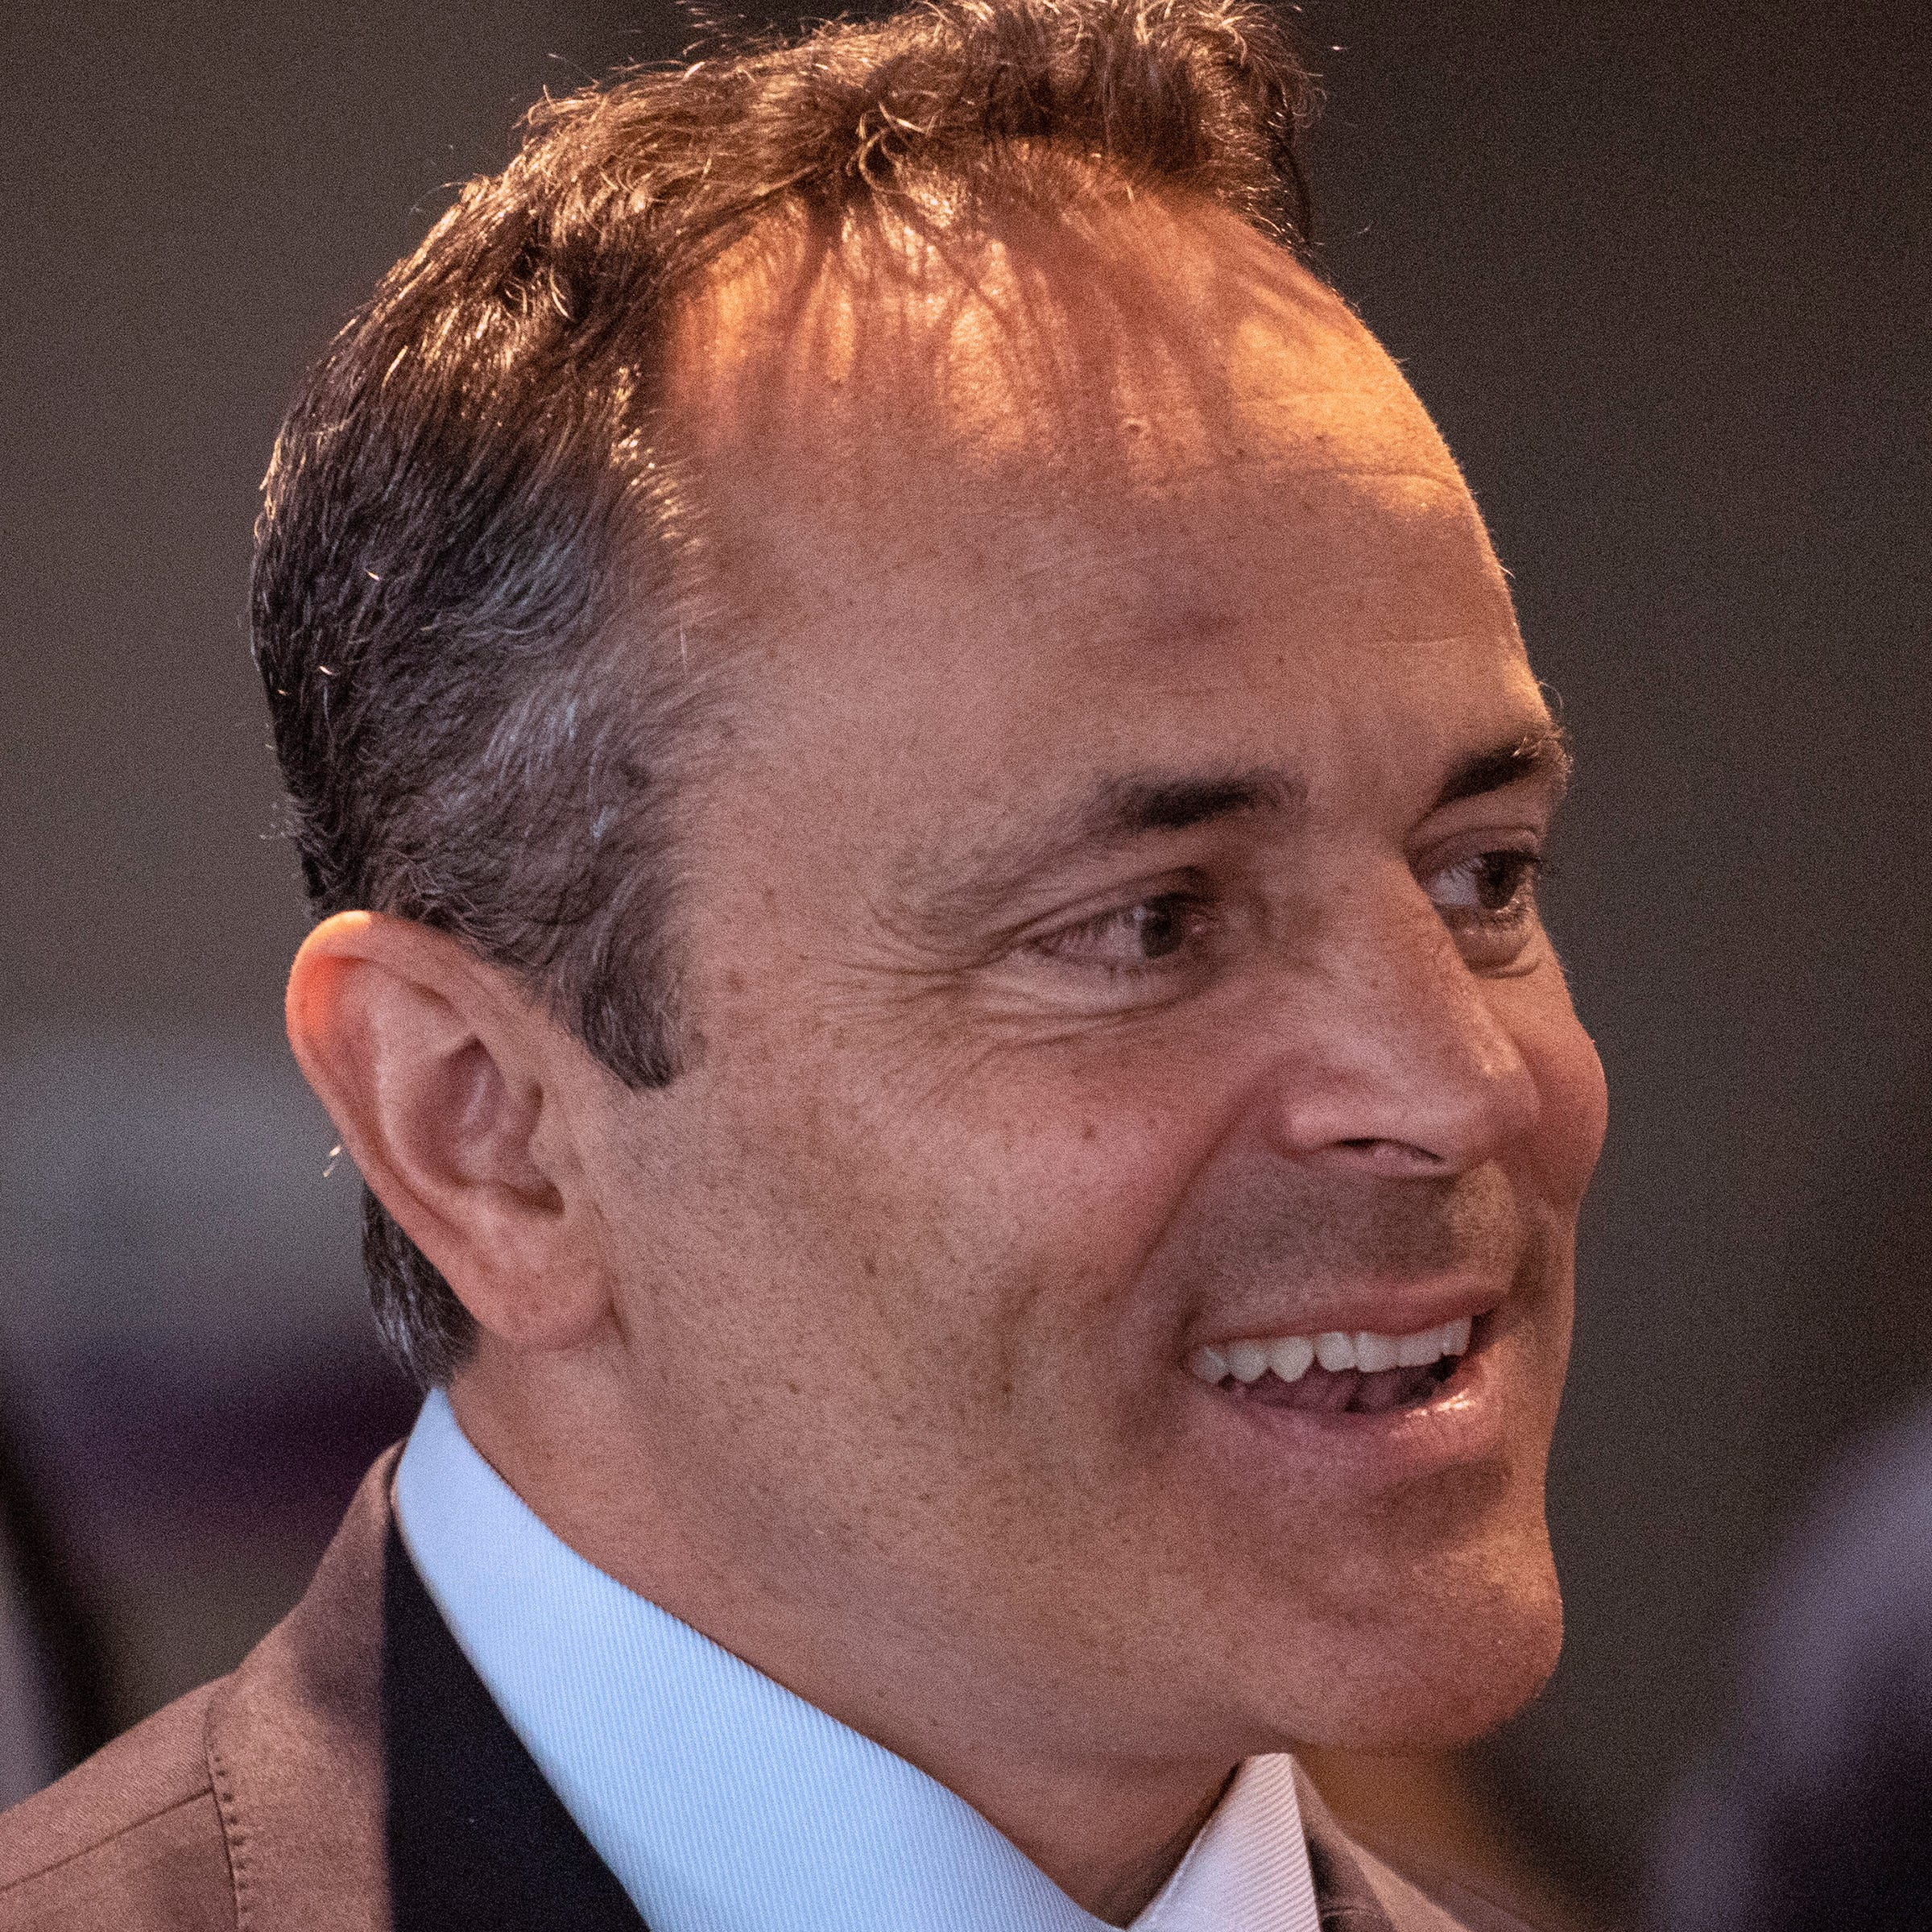 Kentucky Gov. Matt Bevin spoke to members of the Rotary Club of Louisville on Thursday afternoon at the Muhammad Ali Center. 4/25/19